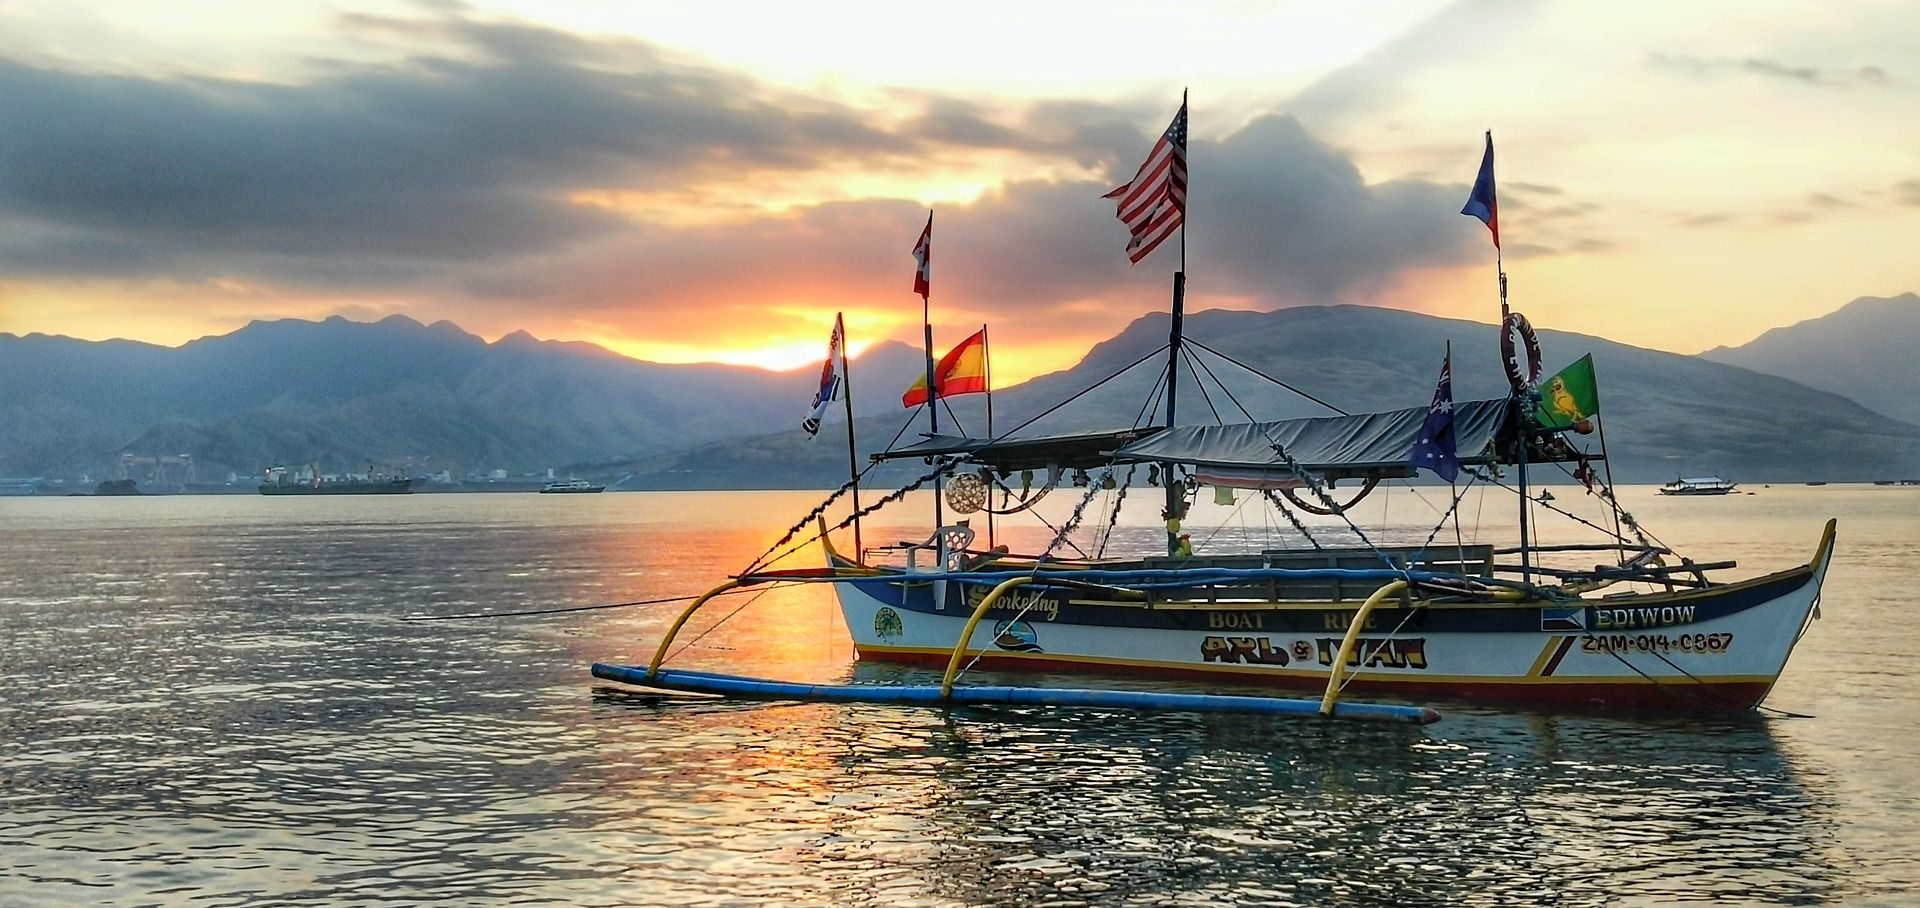 Image of a boat with country flags flying on the water in the Philippines